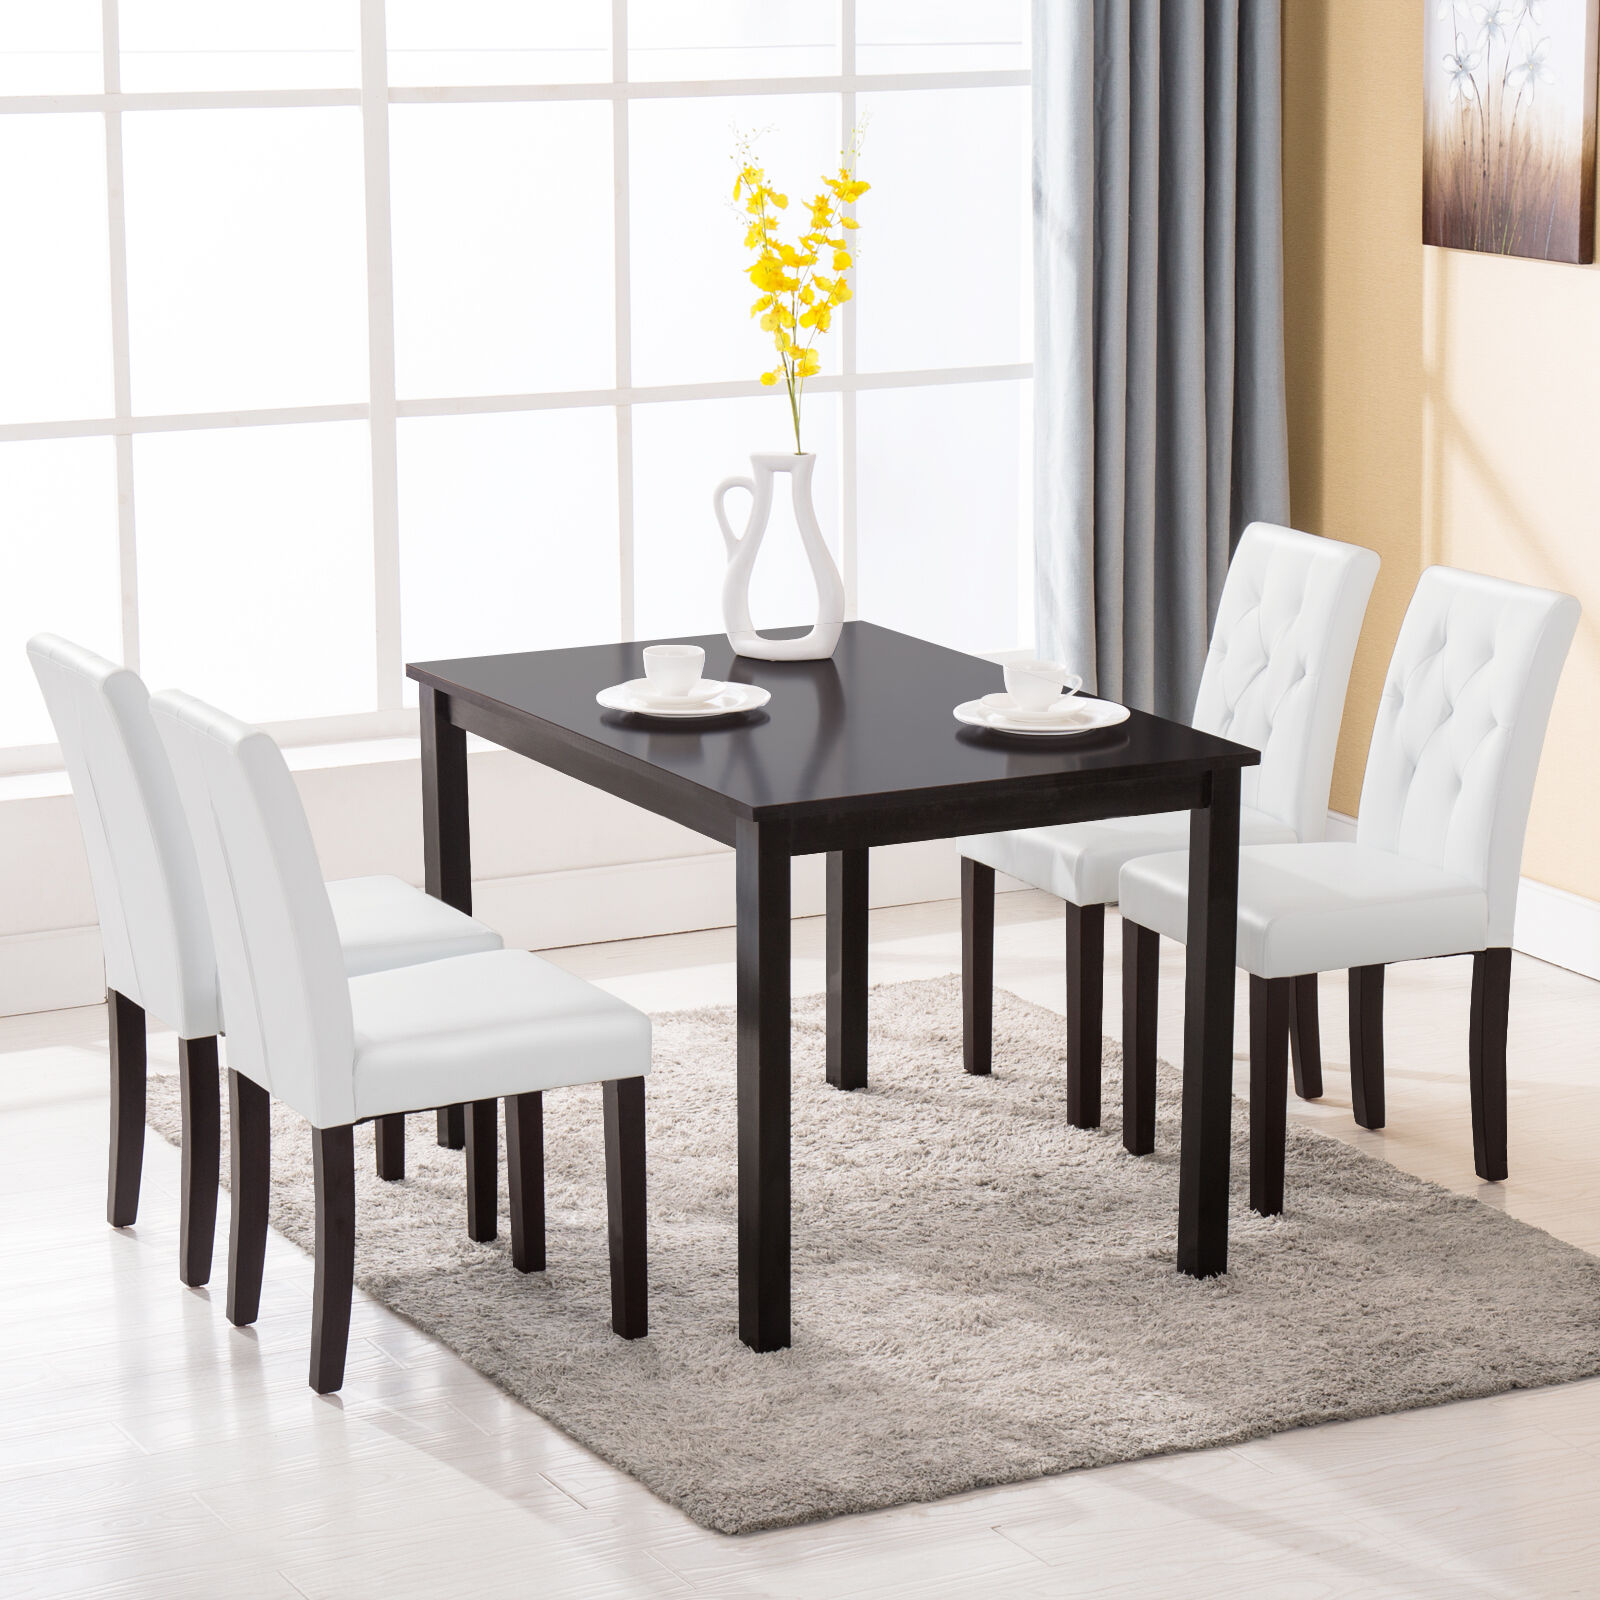 Dinette Bench Seating: 5 Piece Dining Table Set 4 Chairs Room Kitchen Dinette